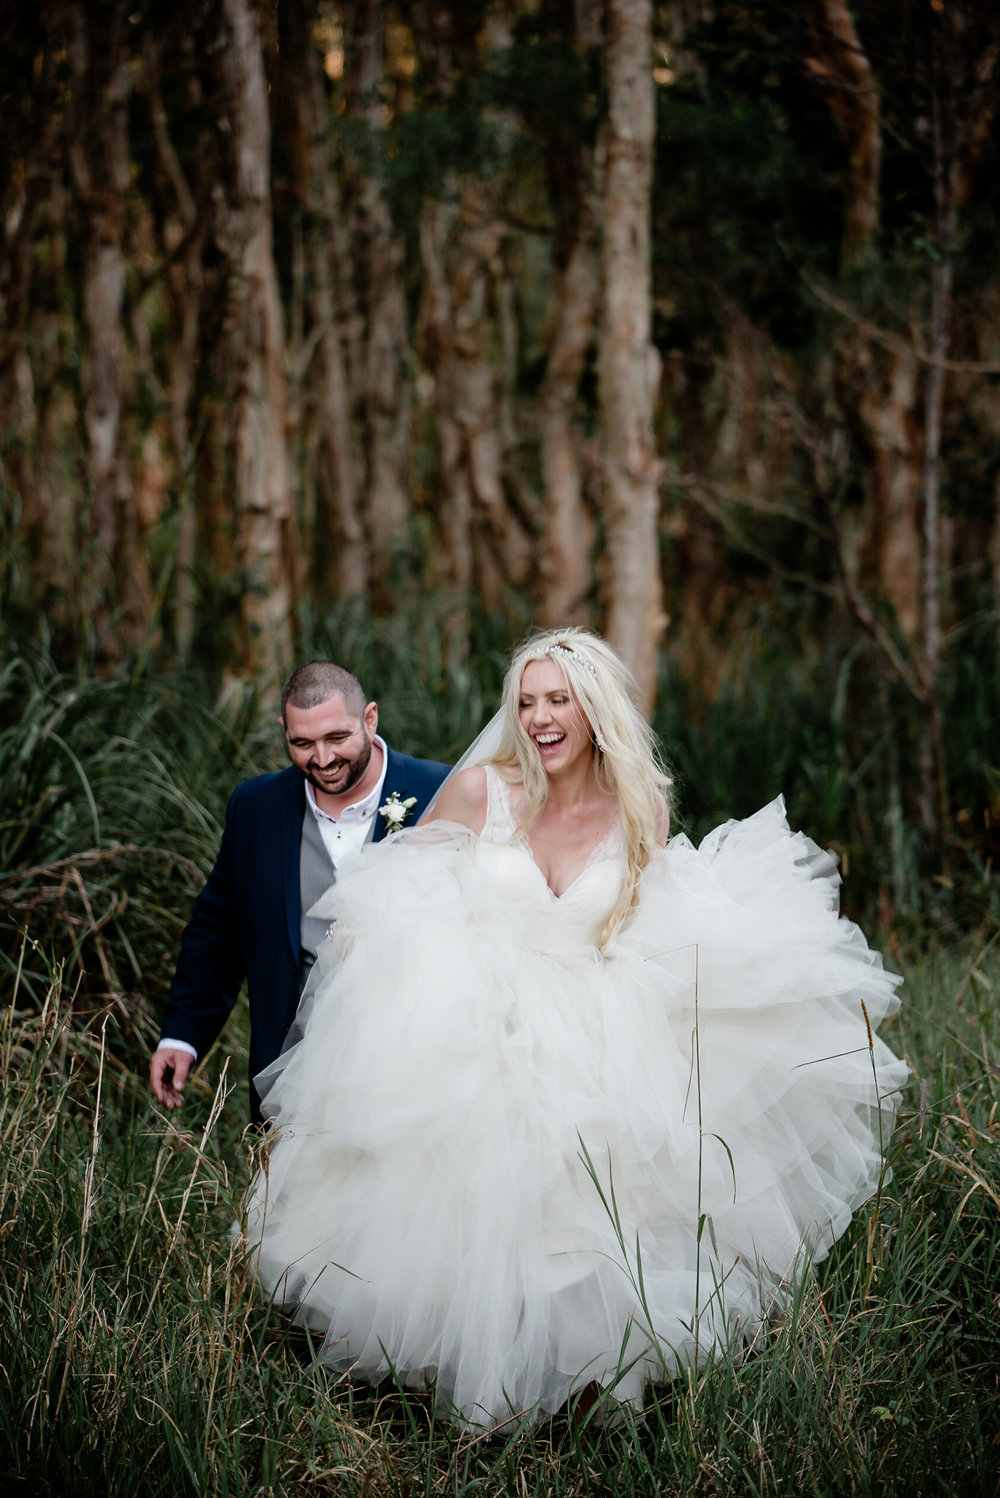 The_Belongil_Byron_Bay_Weddings_New_Black_Studios-145.jpg